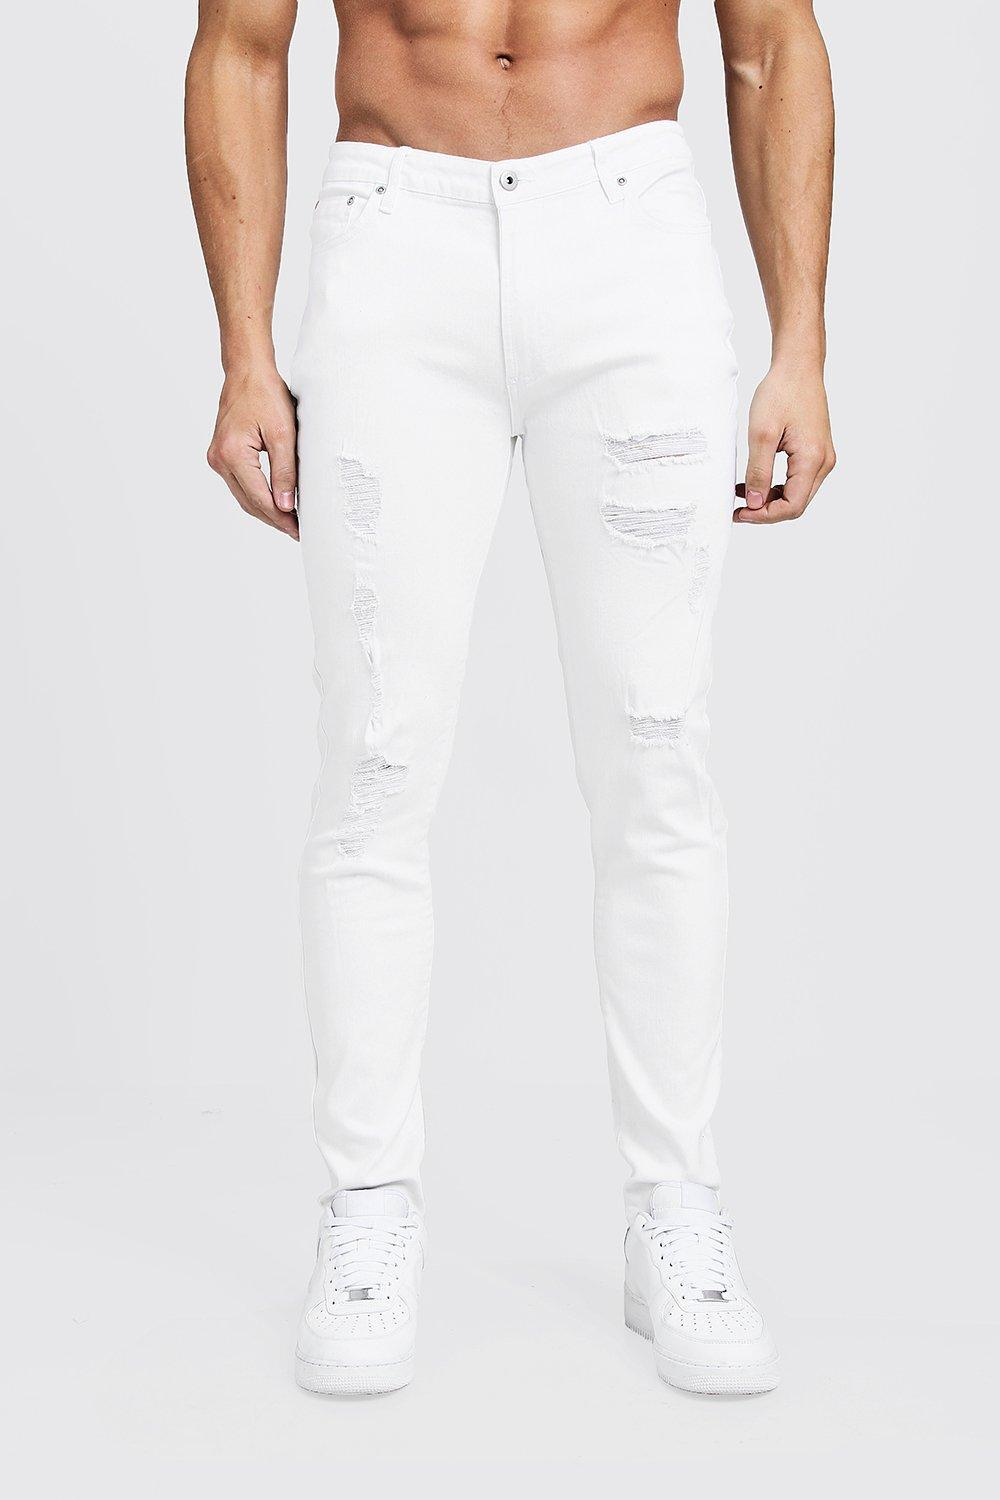 95dbc310c2393 BoohooMAN Stark Zerrissene Skinny-fit Jeans in White for Men - Lyst